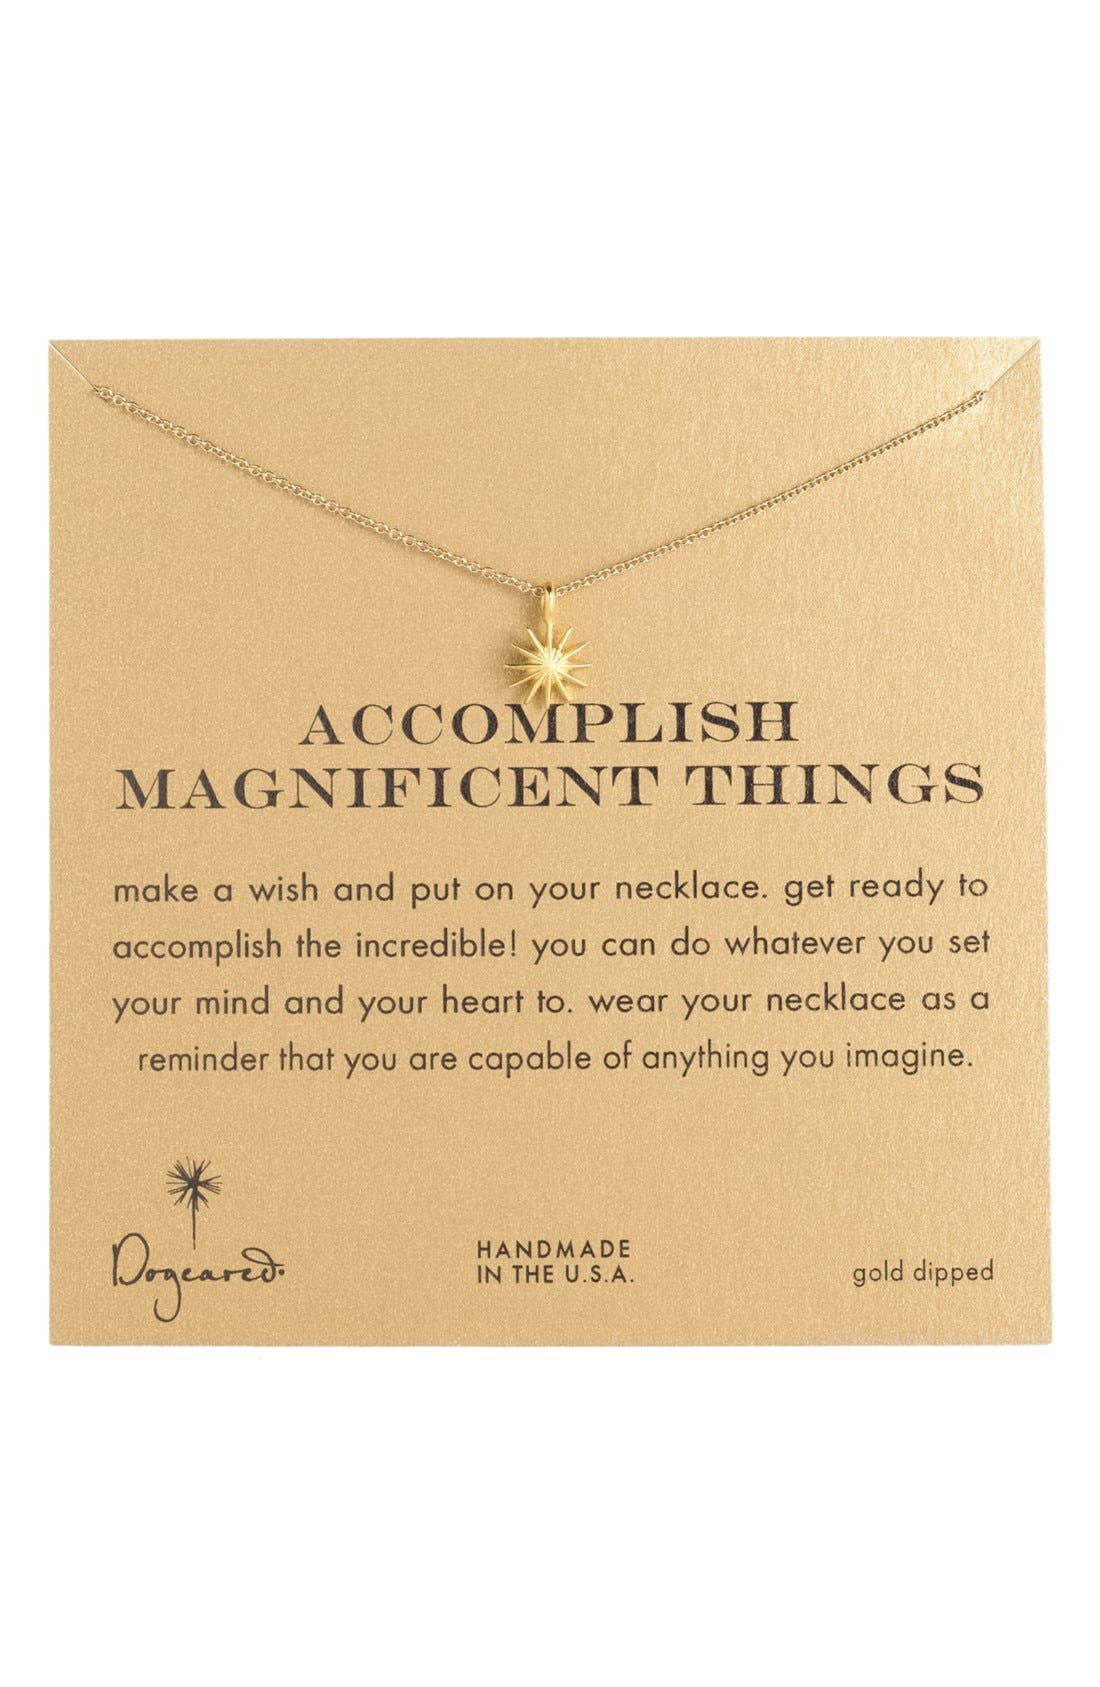 Alternate Image 1 Selected - Dogeared 'Accomplish Magnificent Things' Pendant Necklace